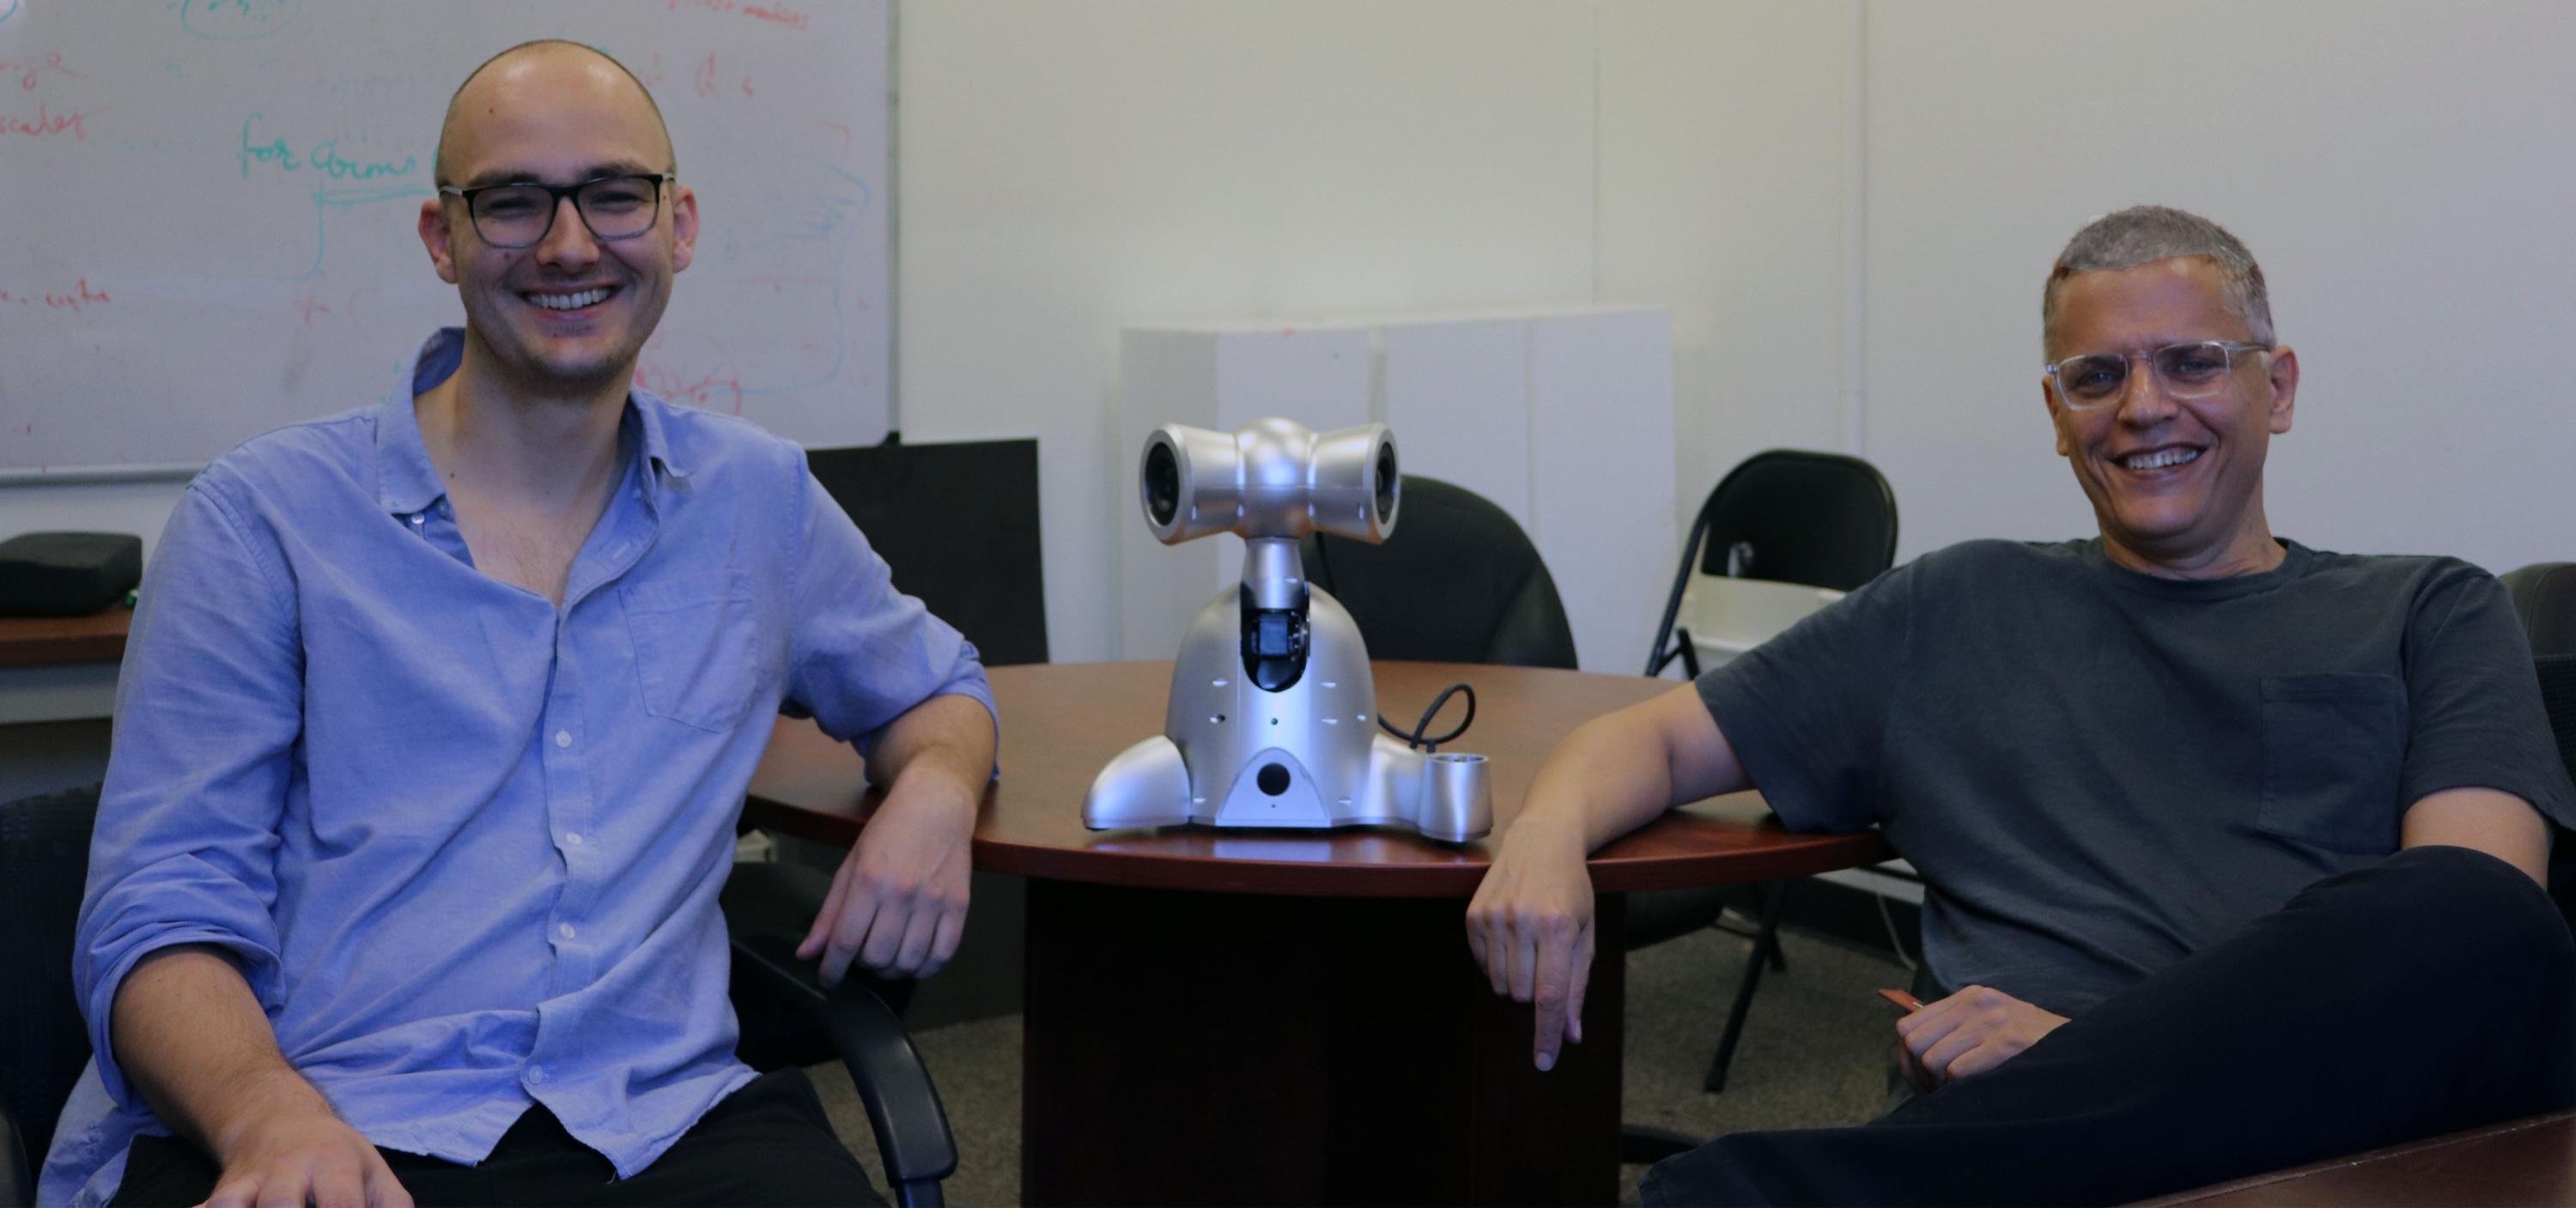 Gil Weinberg and Richard Savery pose with a Shimi robot, one of the robots created by the Robotic Musicianship group.